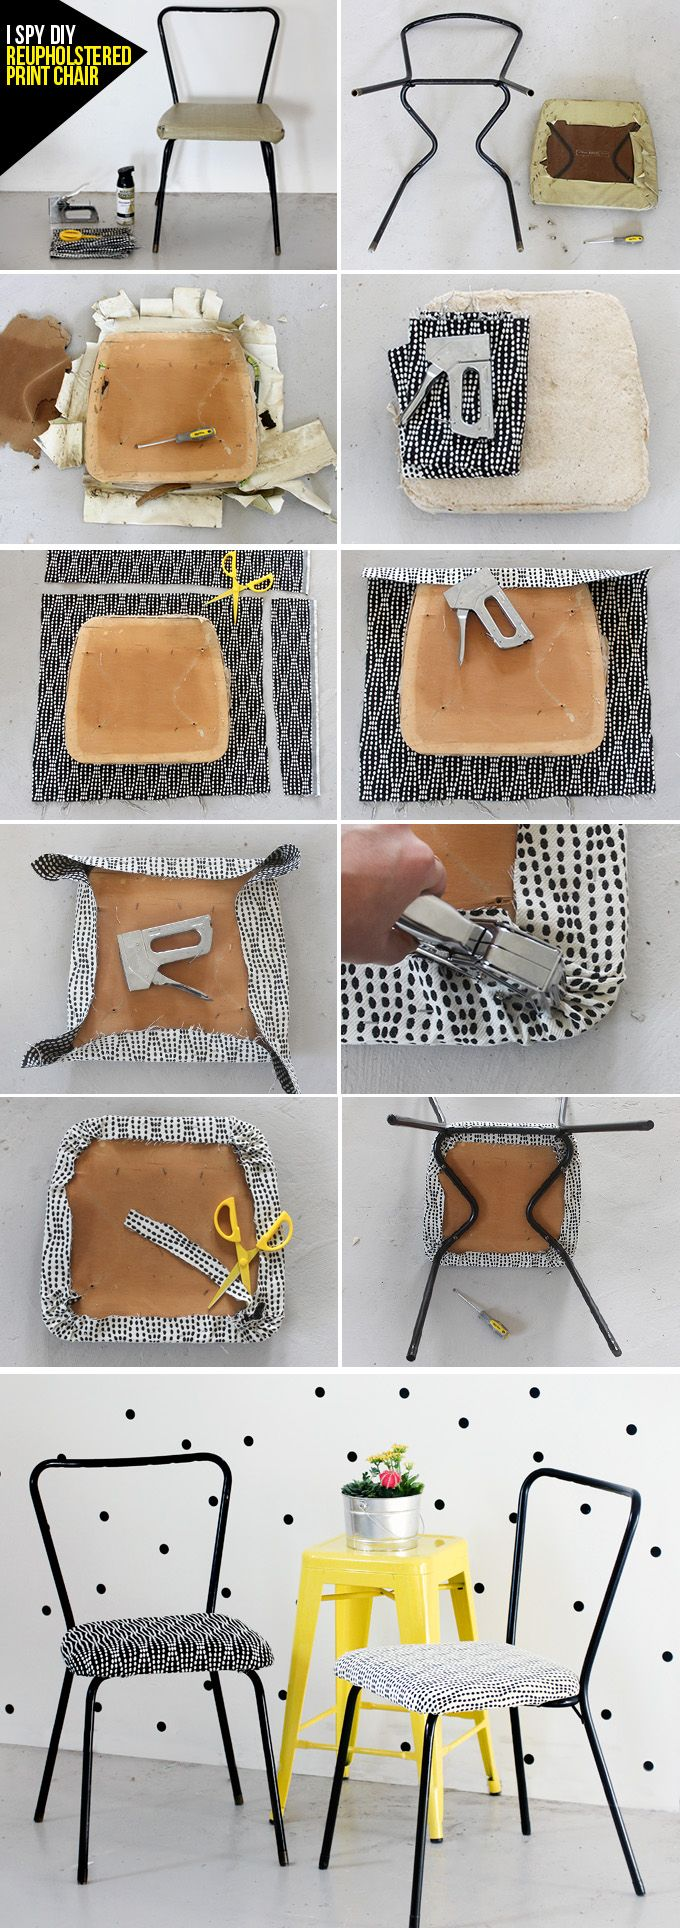 Step by Step DIY Reupholster Chairs How-To